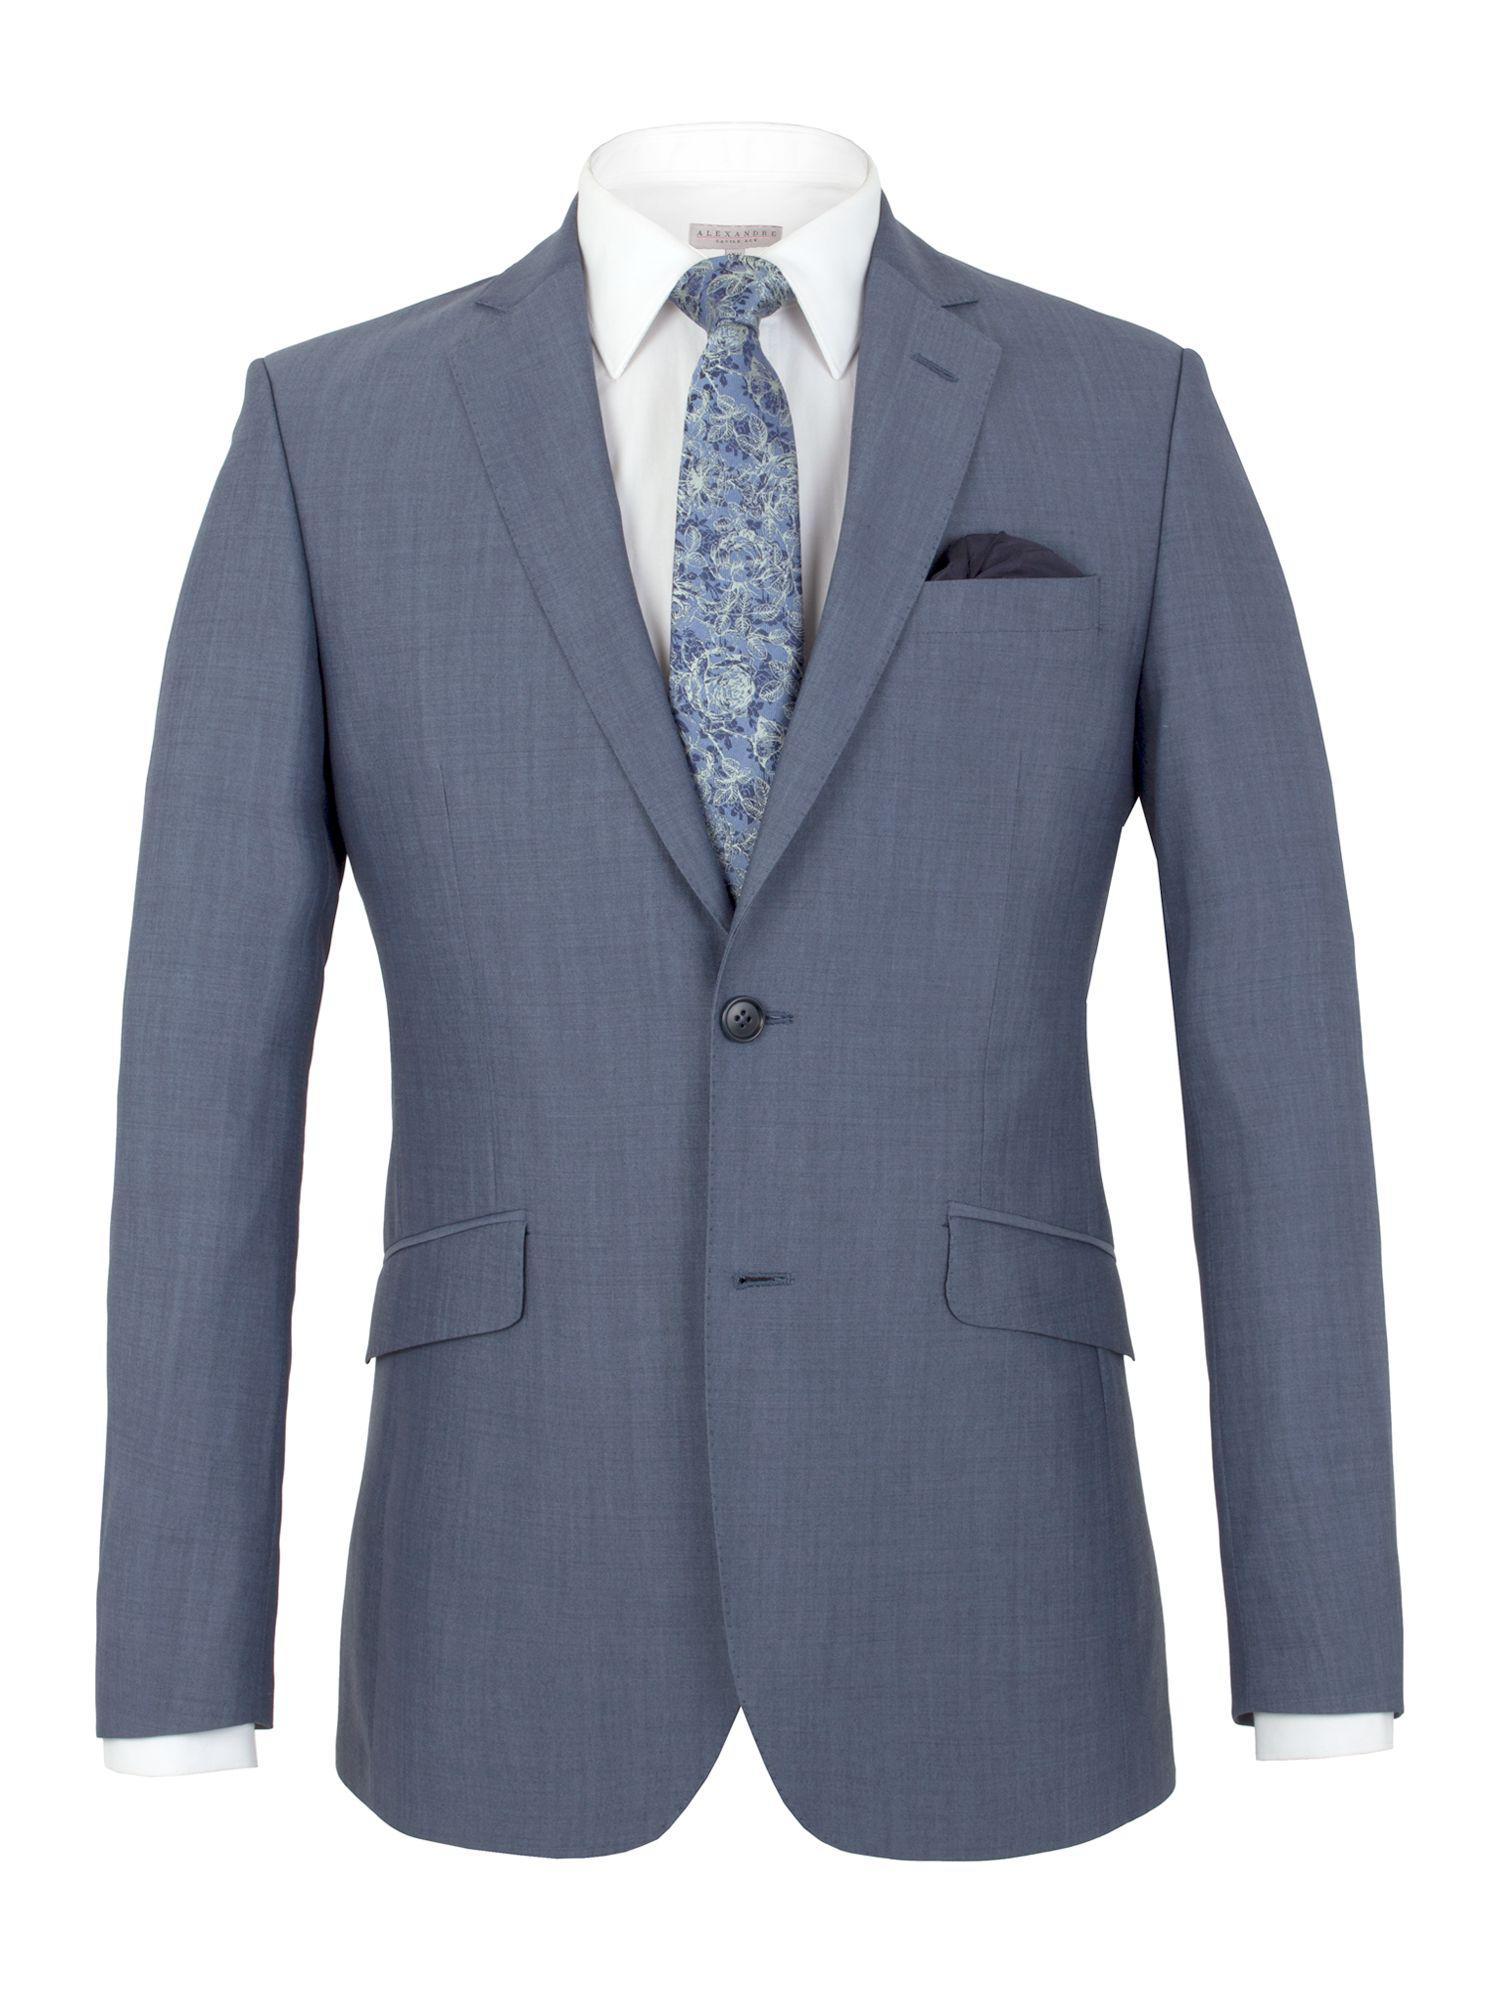 daa2f6b00 Alexandre Of England Southwark Panama Tailored Fit Jacket in Blue ...